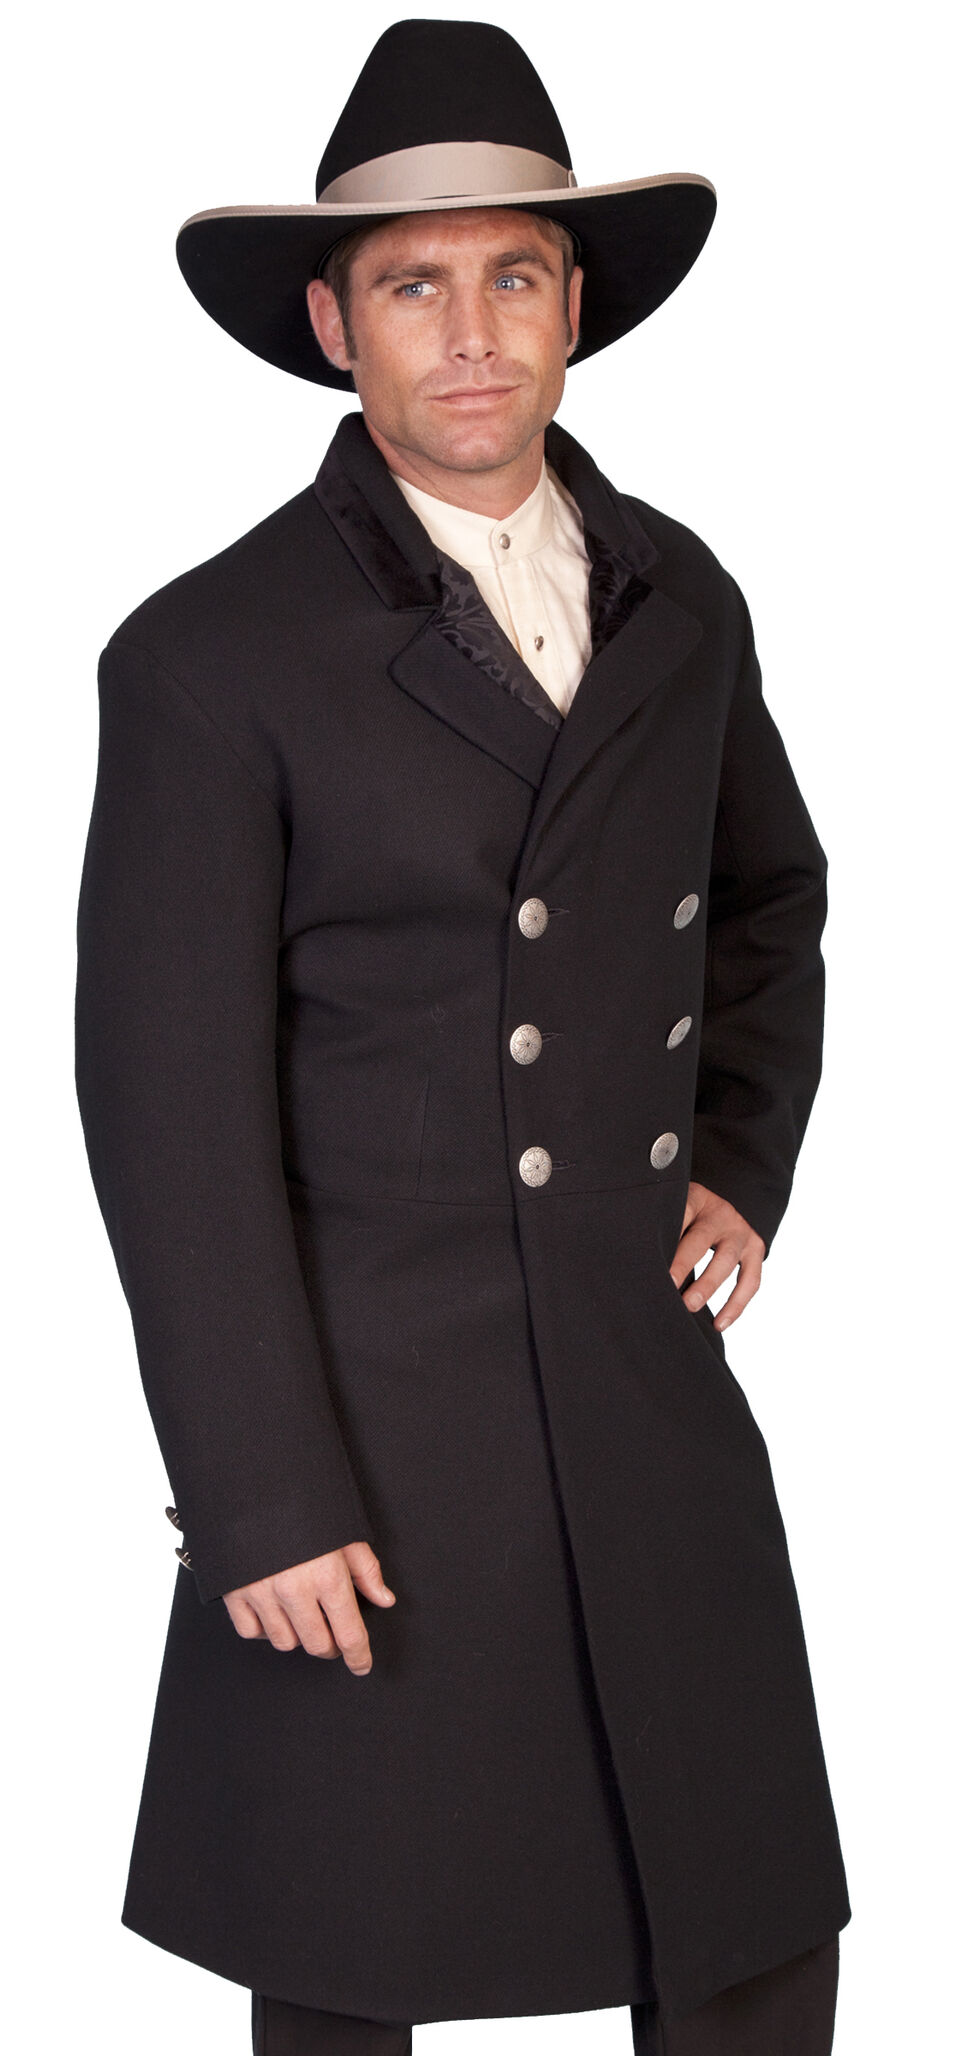 WahMaker Old West Double-Breasted Frock Coat, Black, hi-res